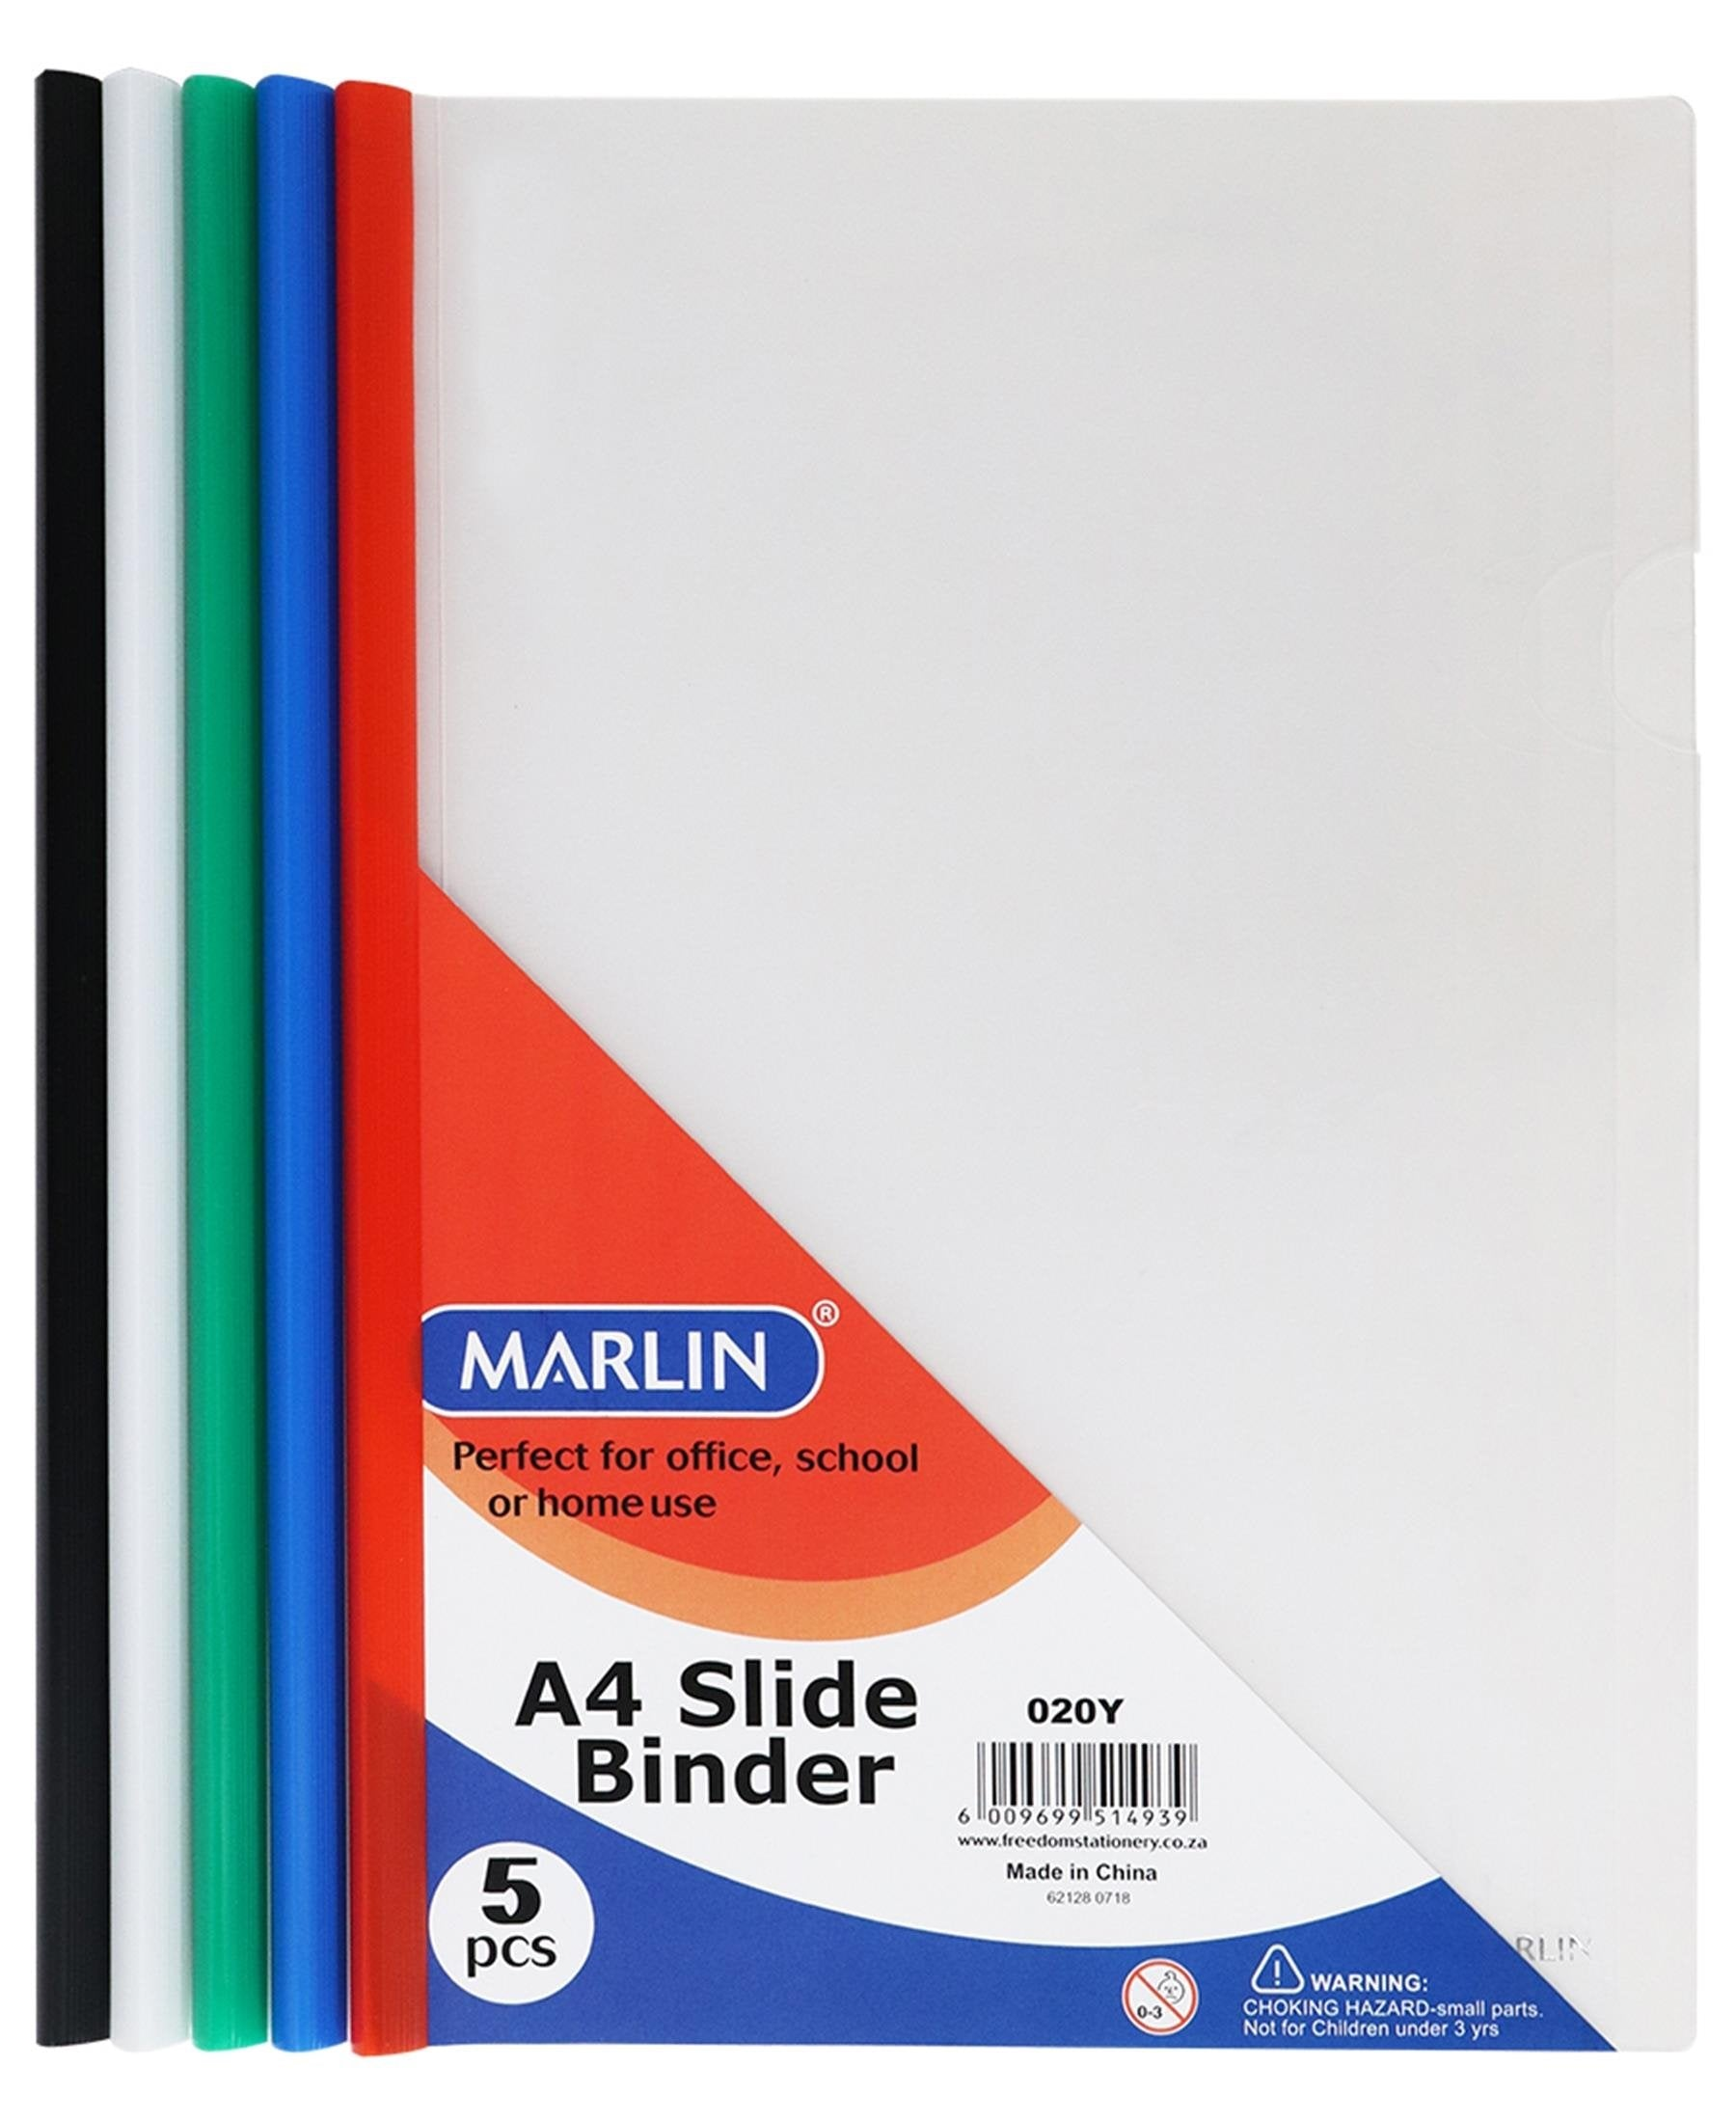 Marlin Slide Binder - Multi